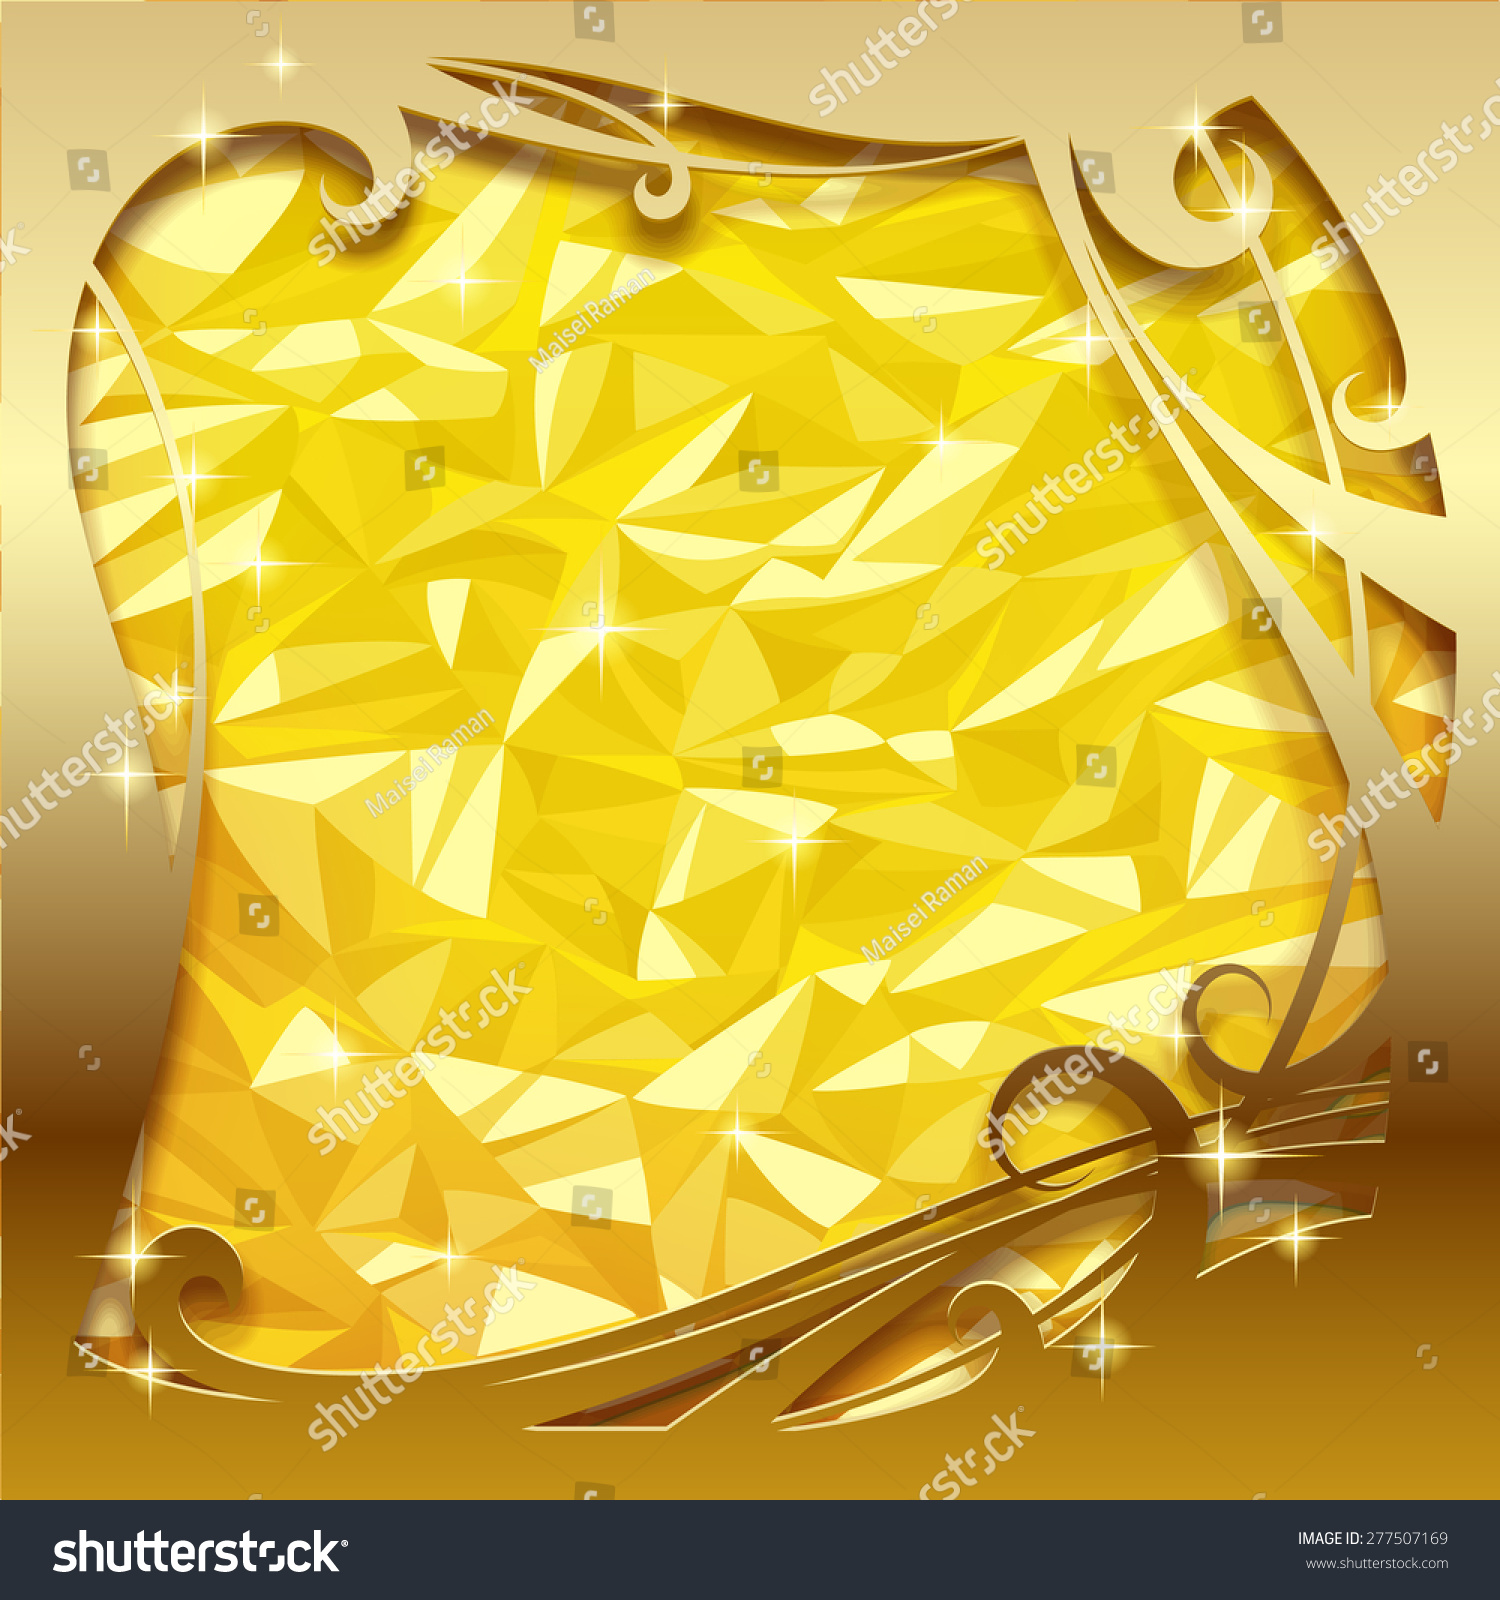 Square Greeting Card Poster Gold Foil Stock Vector 277507169